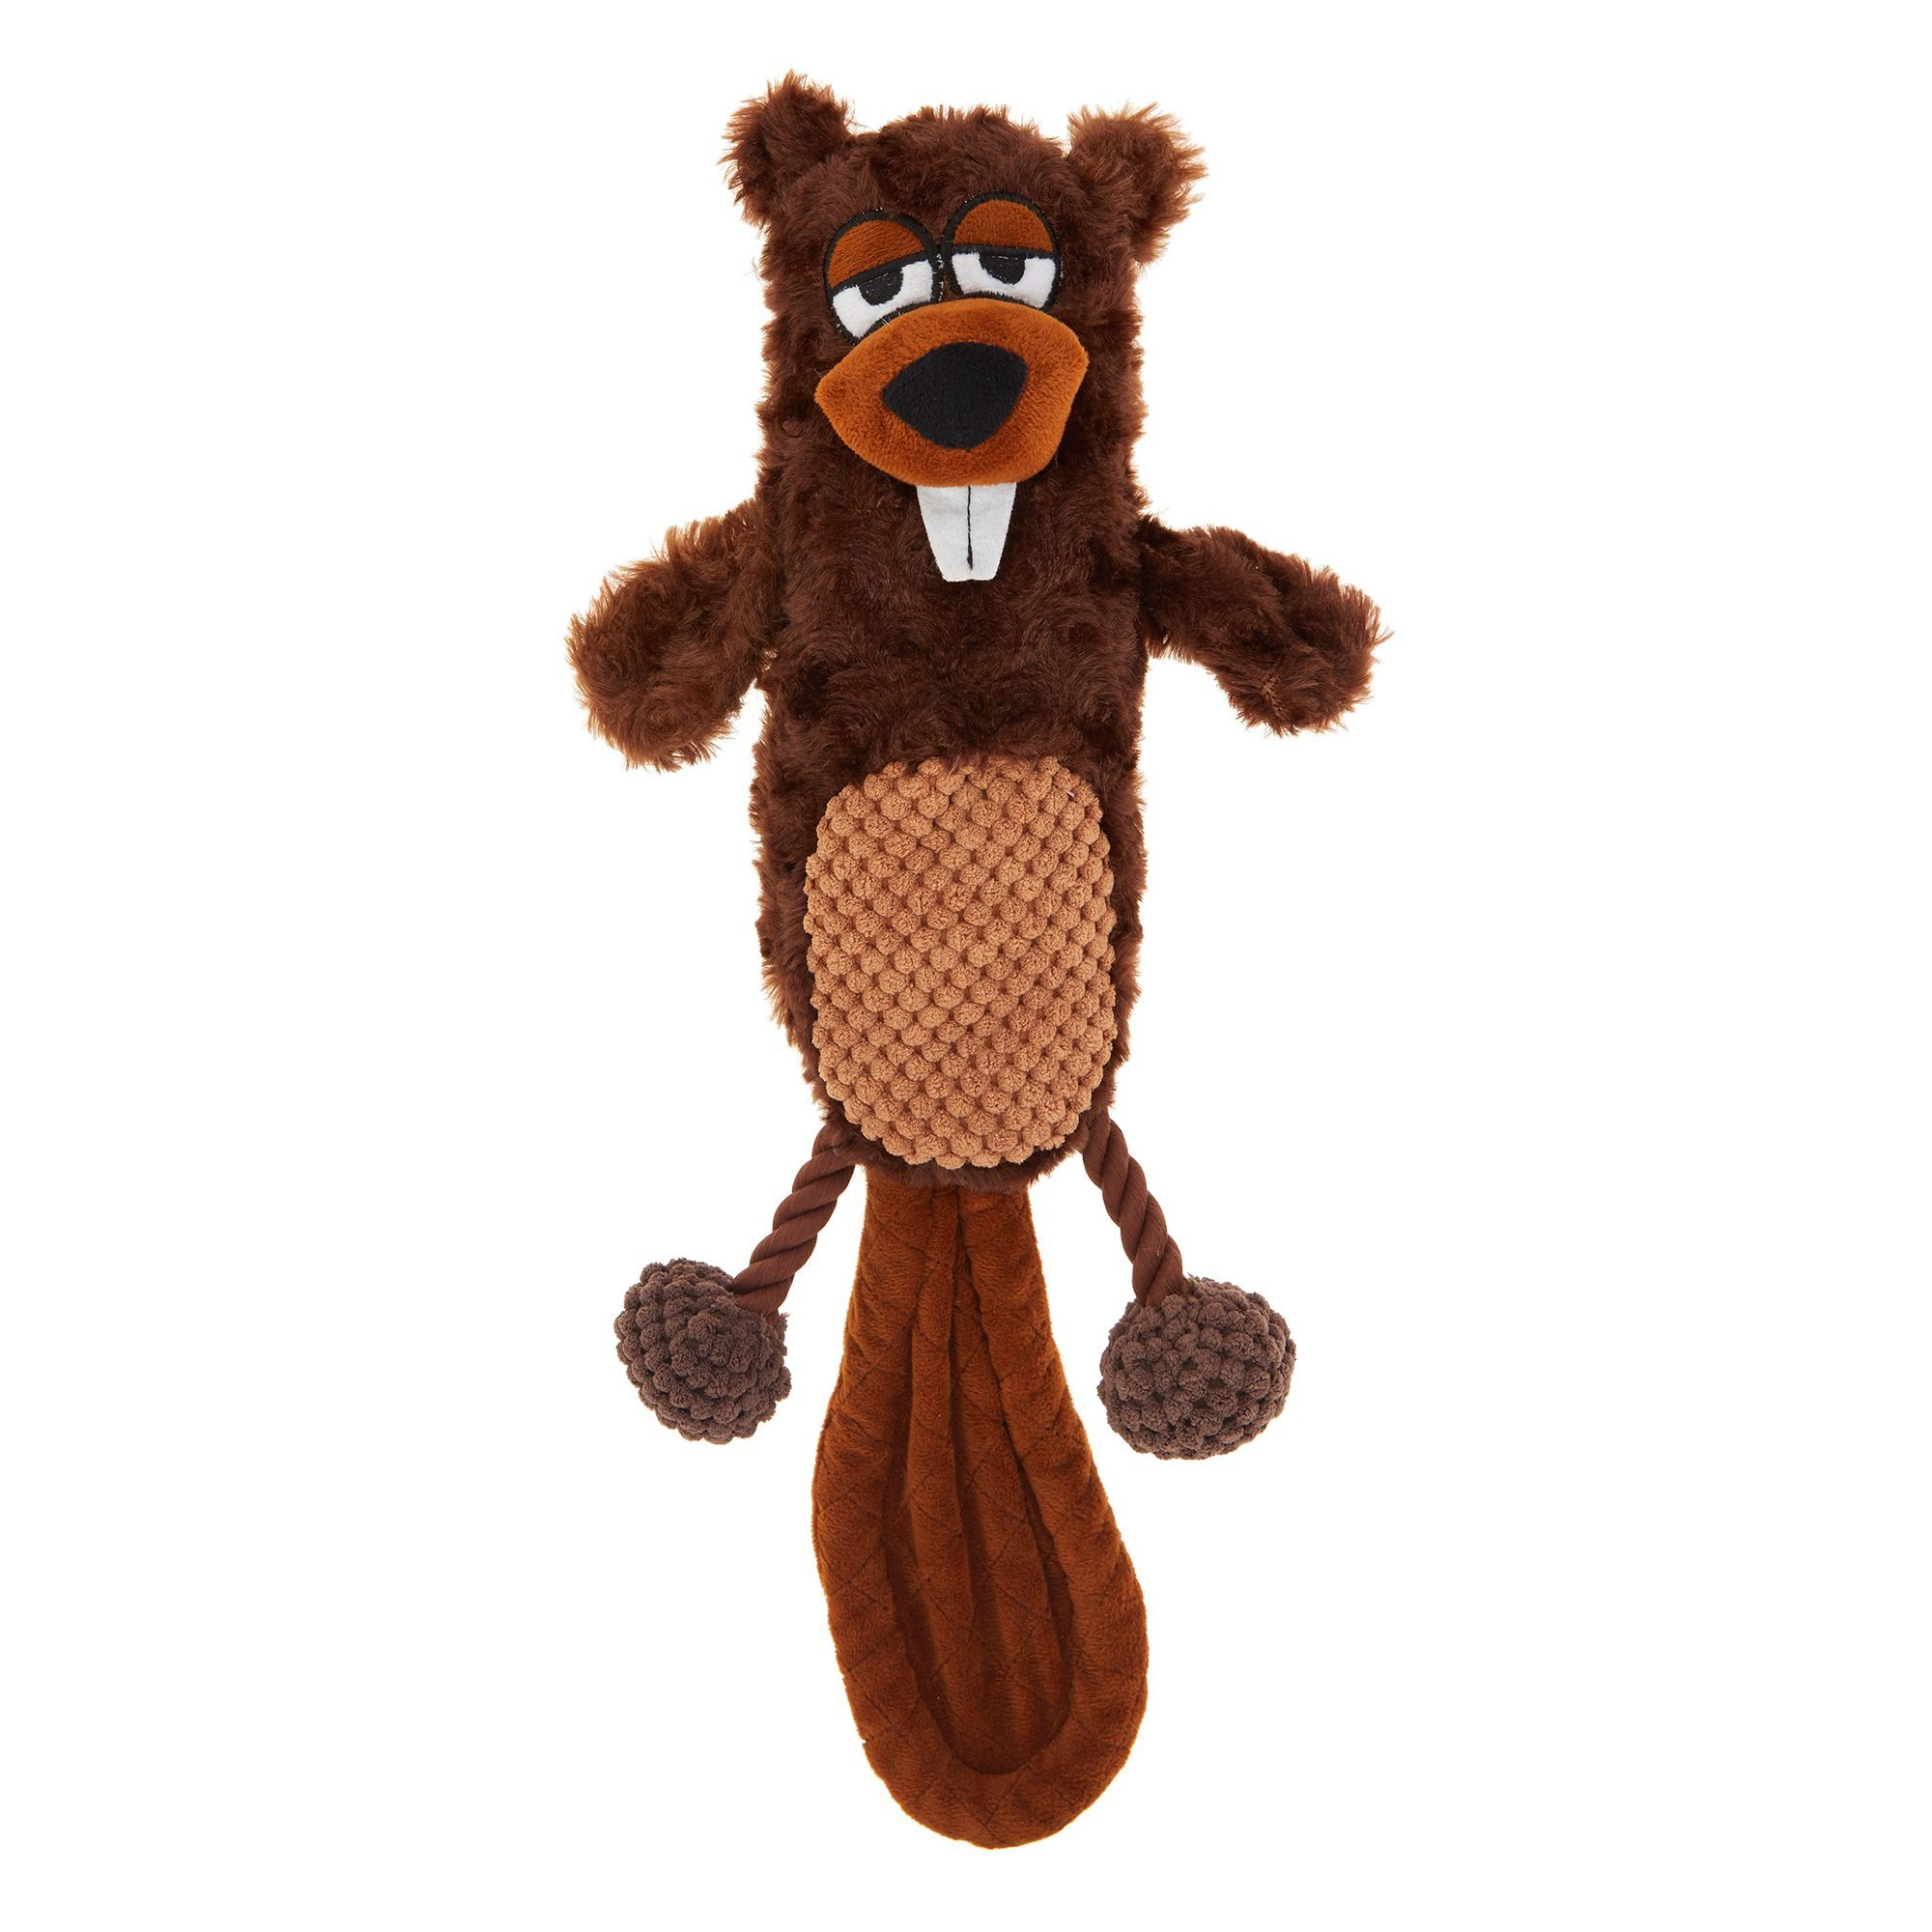 Cute Squeaky Beaver Dog Toy With Images Cat Blanket Cute Toys